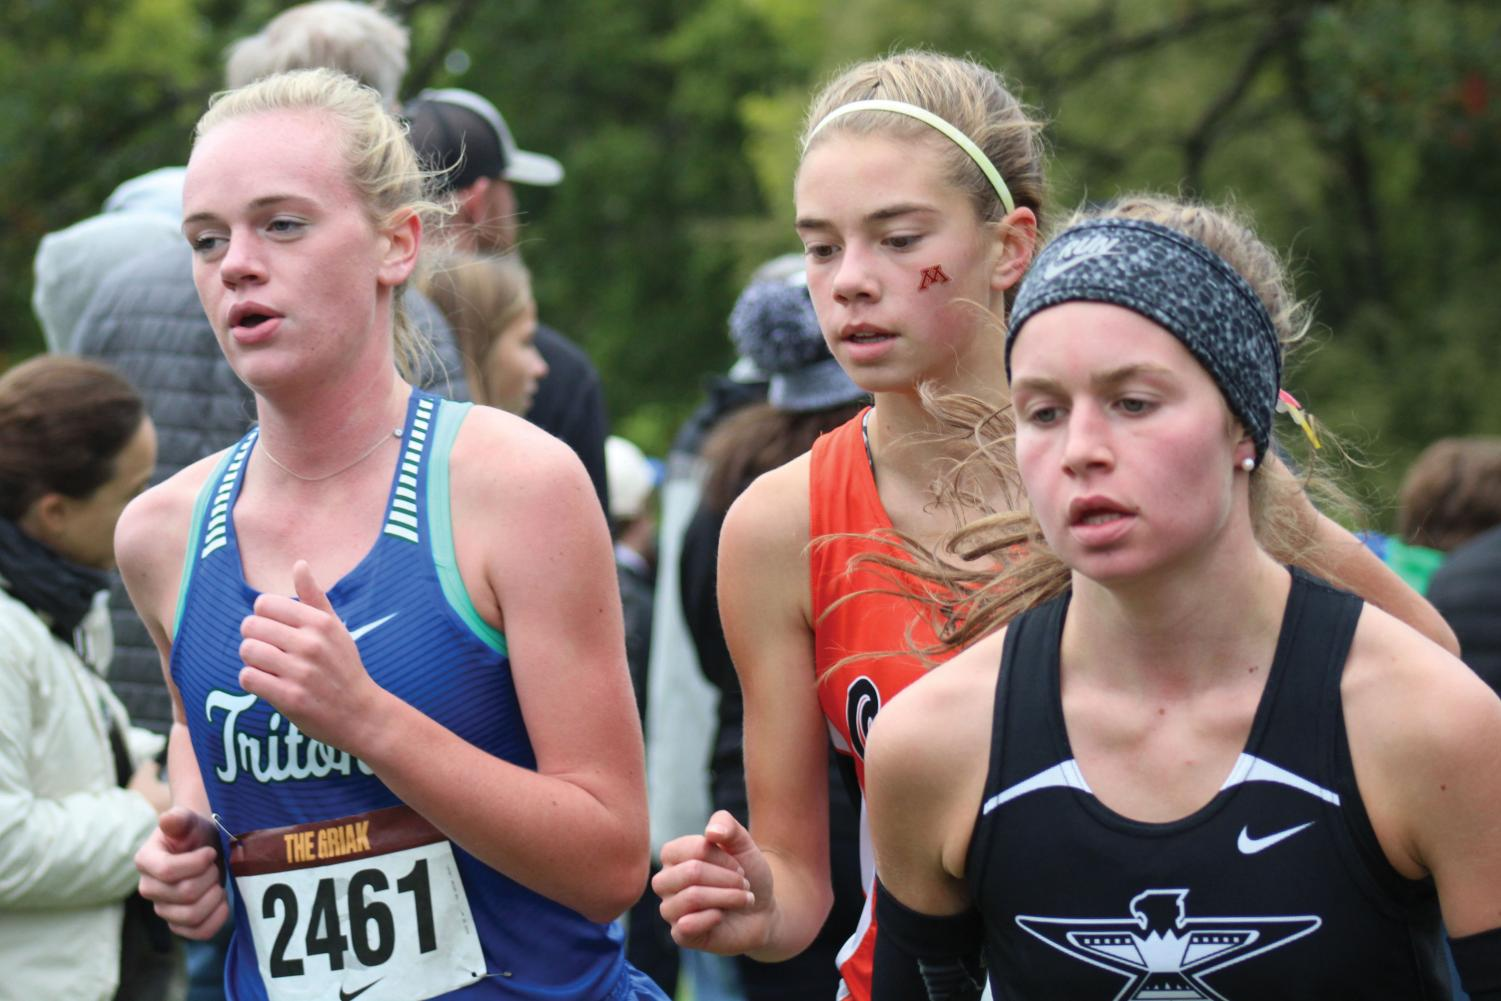 Freshman Josie Mosby attempts to push past her opponents during the Griak meet. It took place Sept.29